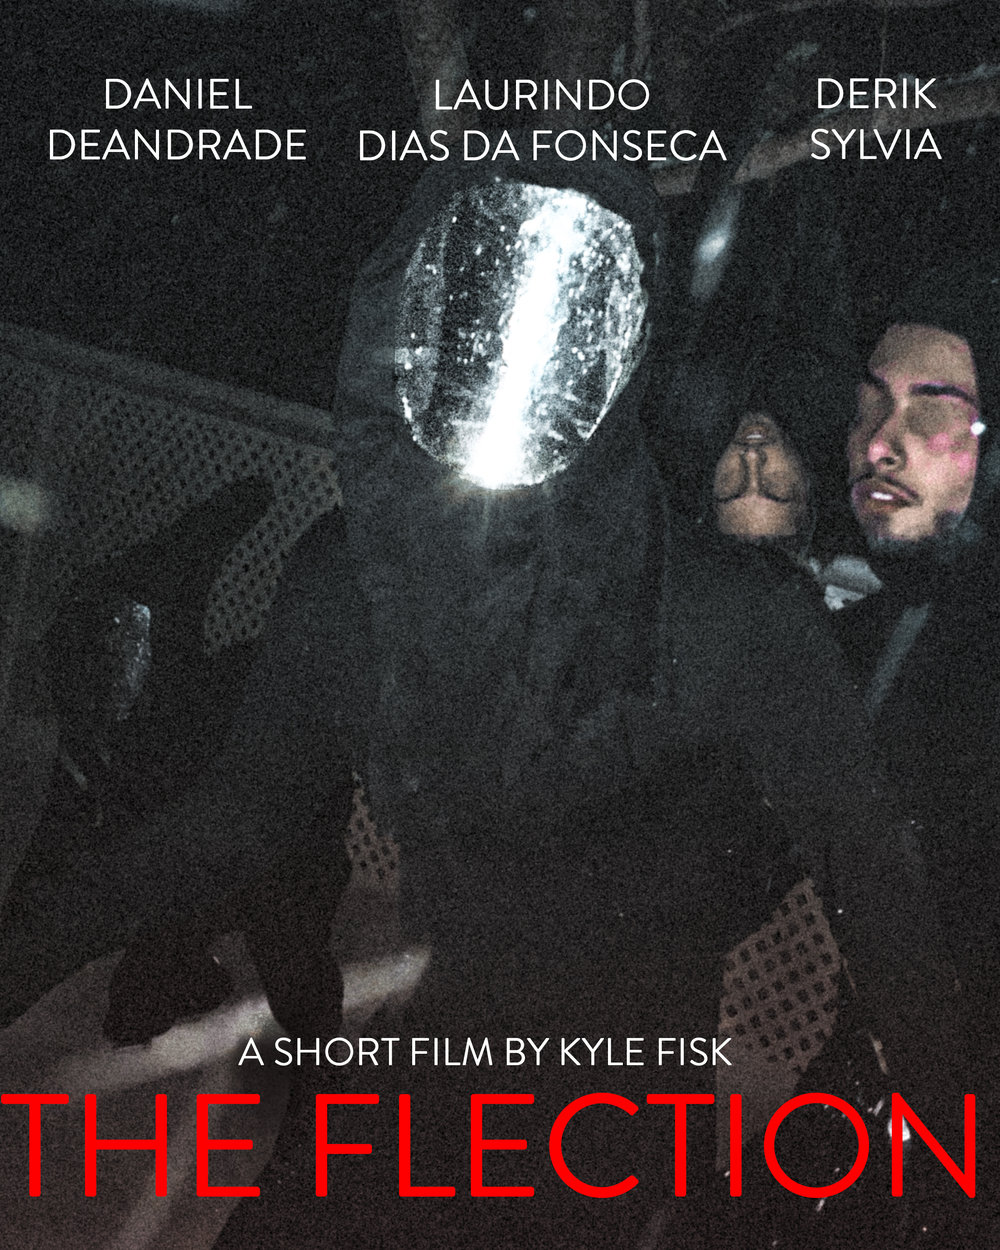 the flection poster.jpg